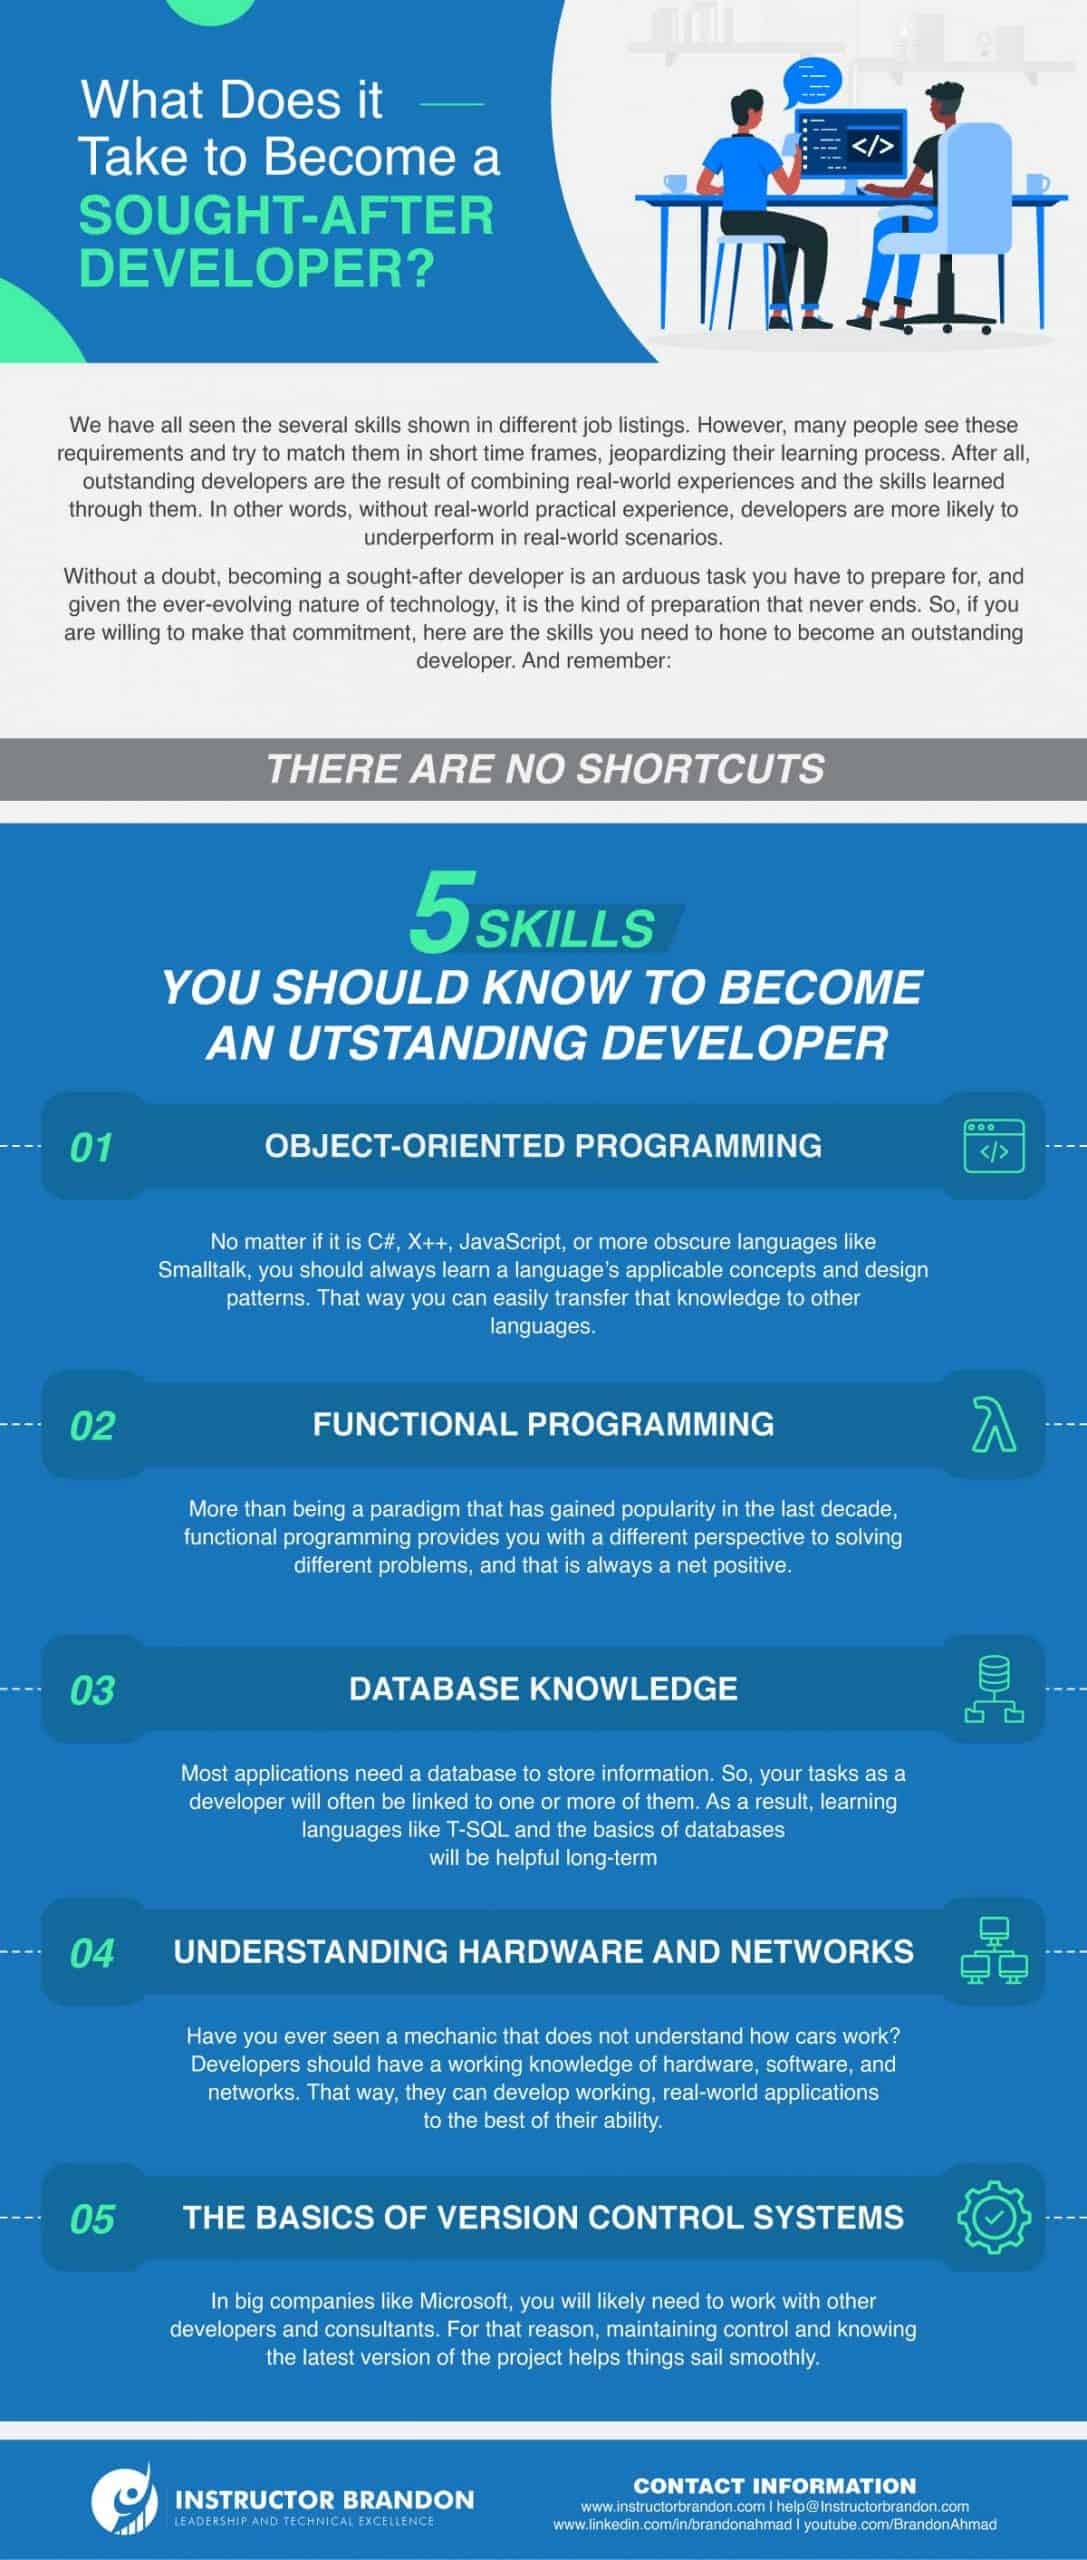 Infographic Showing What it Takes to Become a Sought-After Microsoft Developer